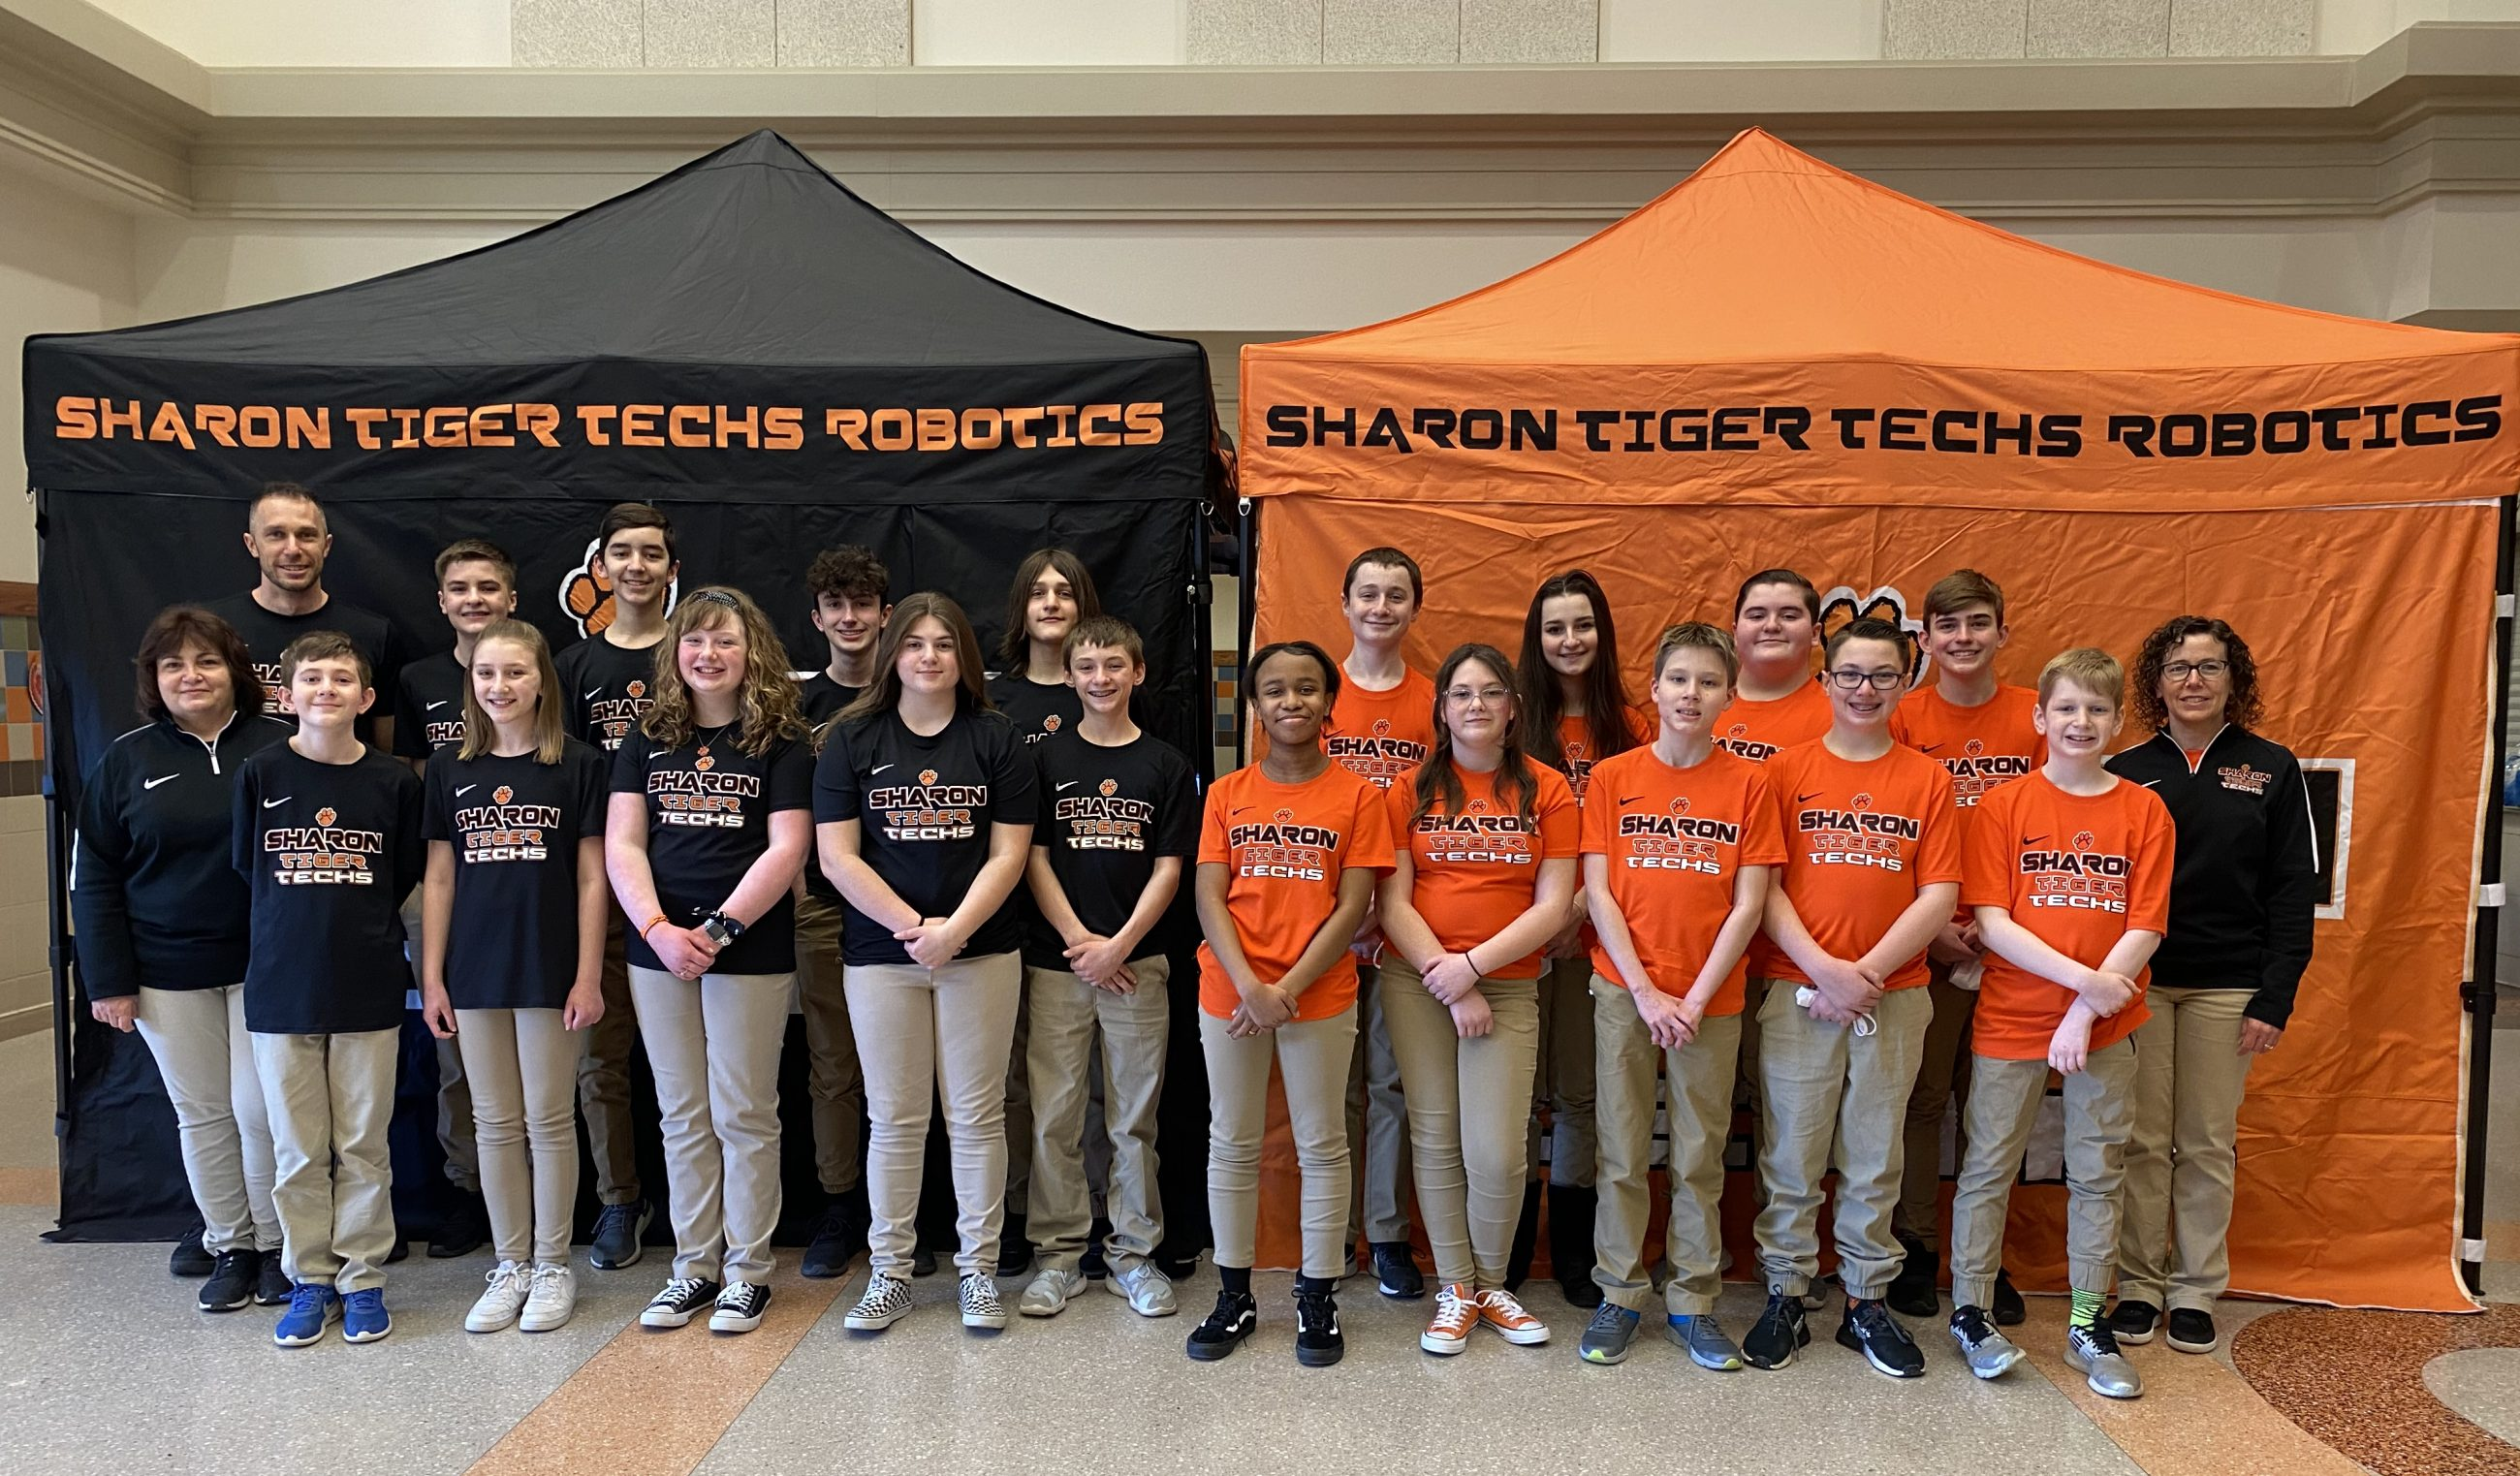 Sharon Tiger Techs Robotics Teams